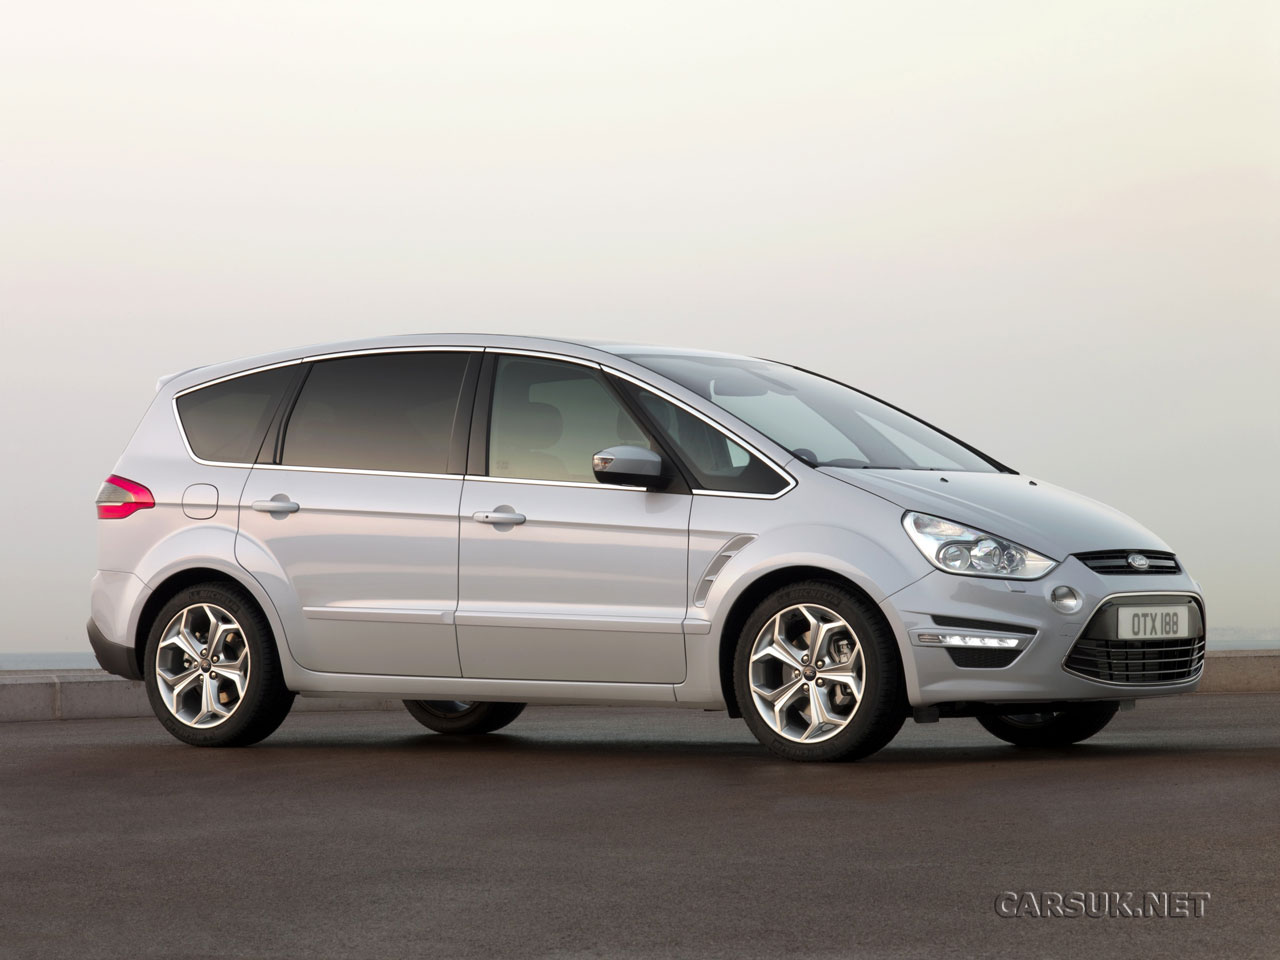 Ford S-Max 2.0 2011 photo - 4